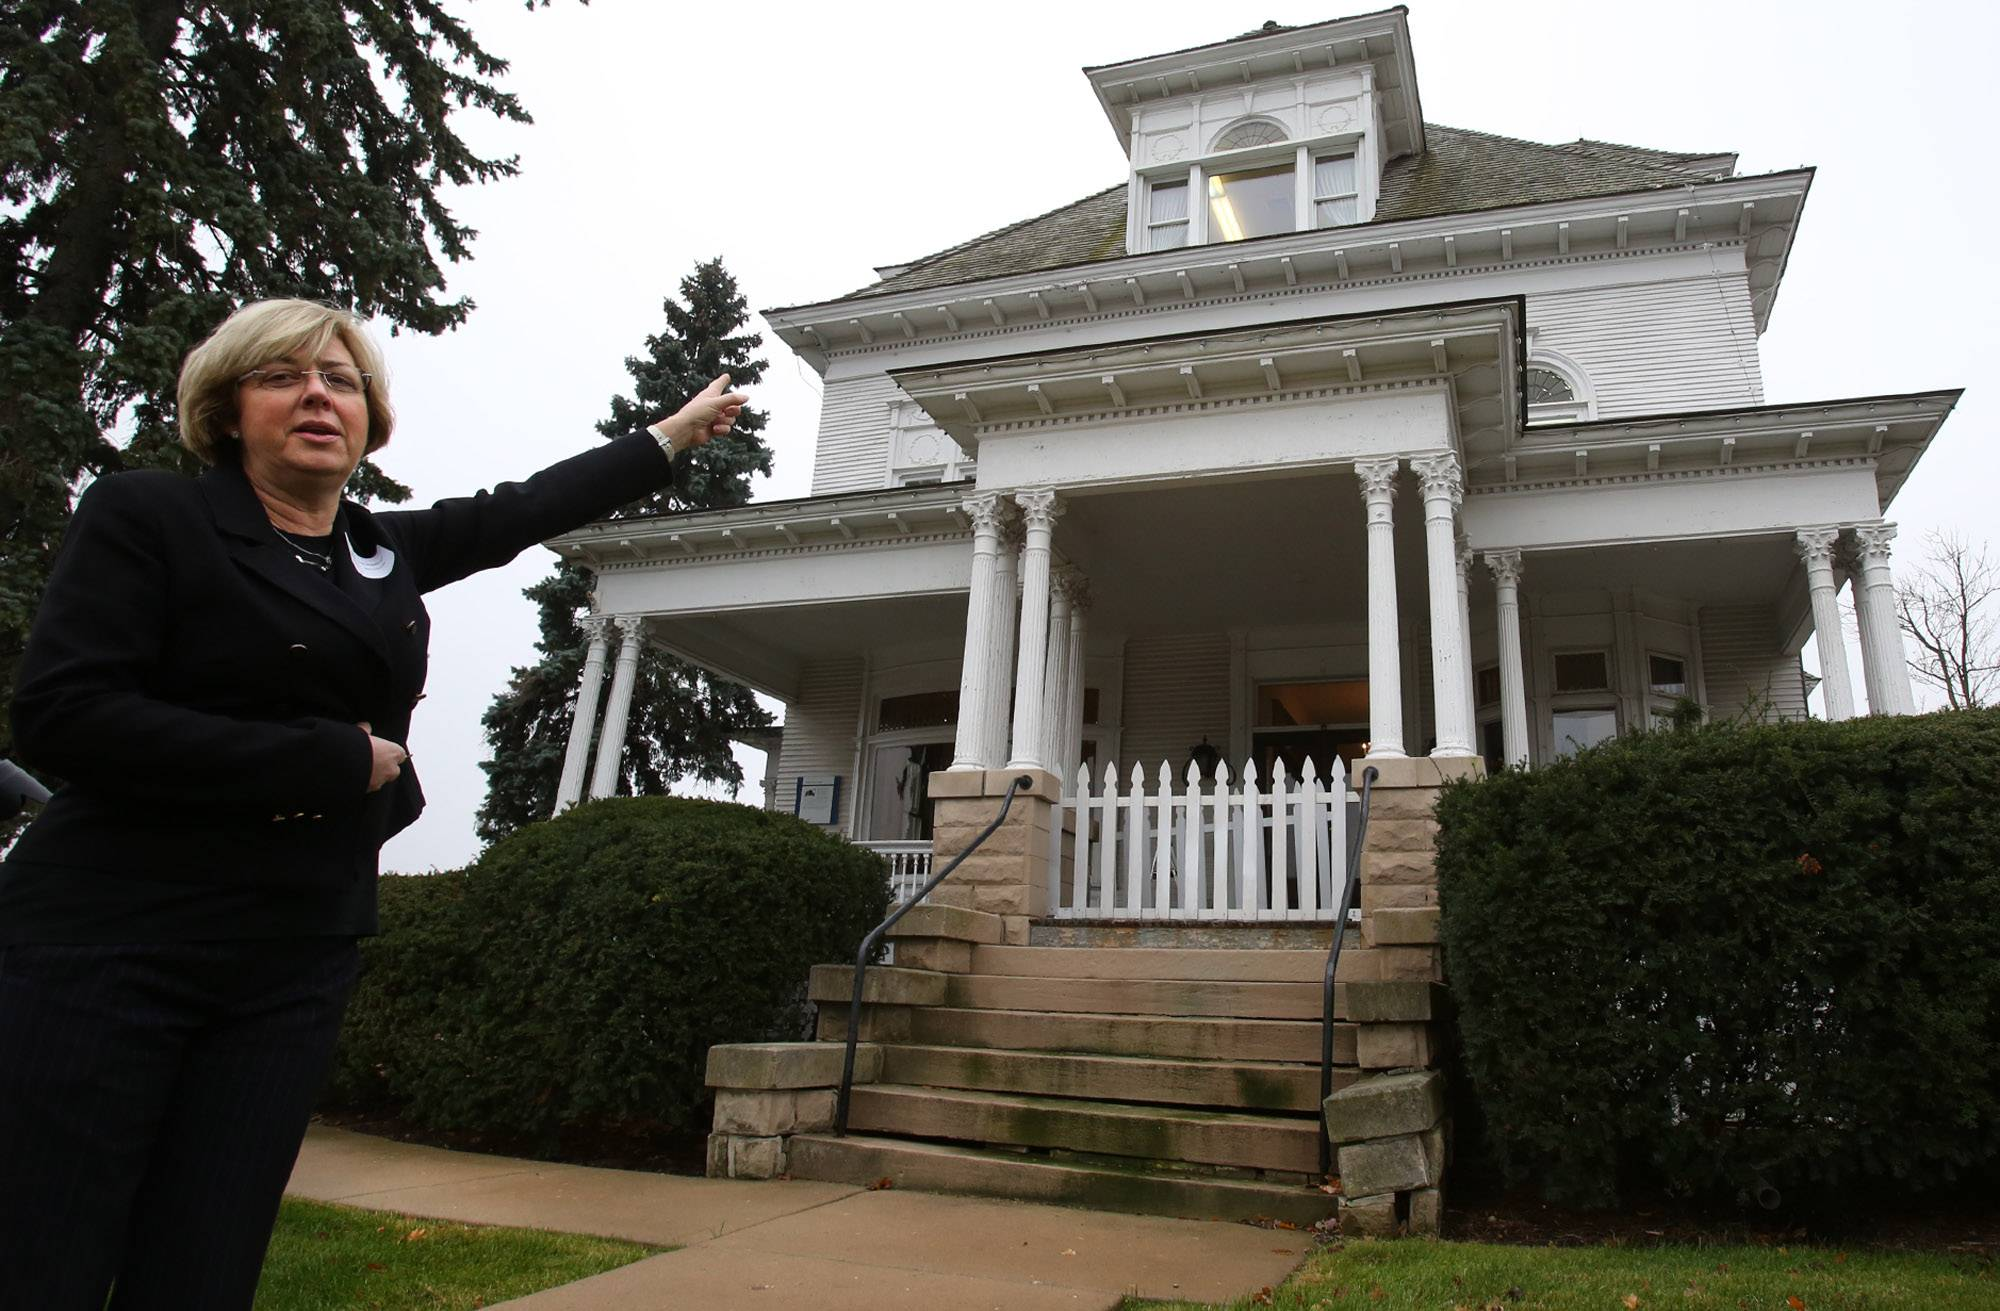 Beth Raseman, the Barrington White House project coordinator, discusses details of the exterior of the house during a community open house at Barrington�s White House last November.